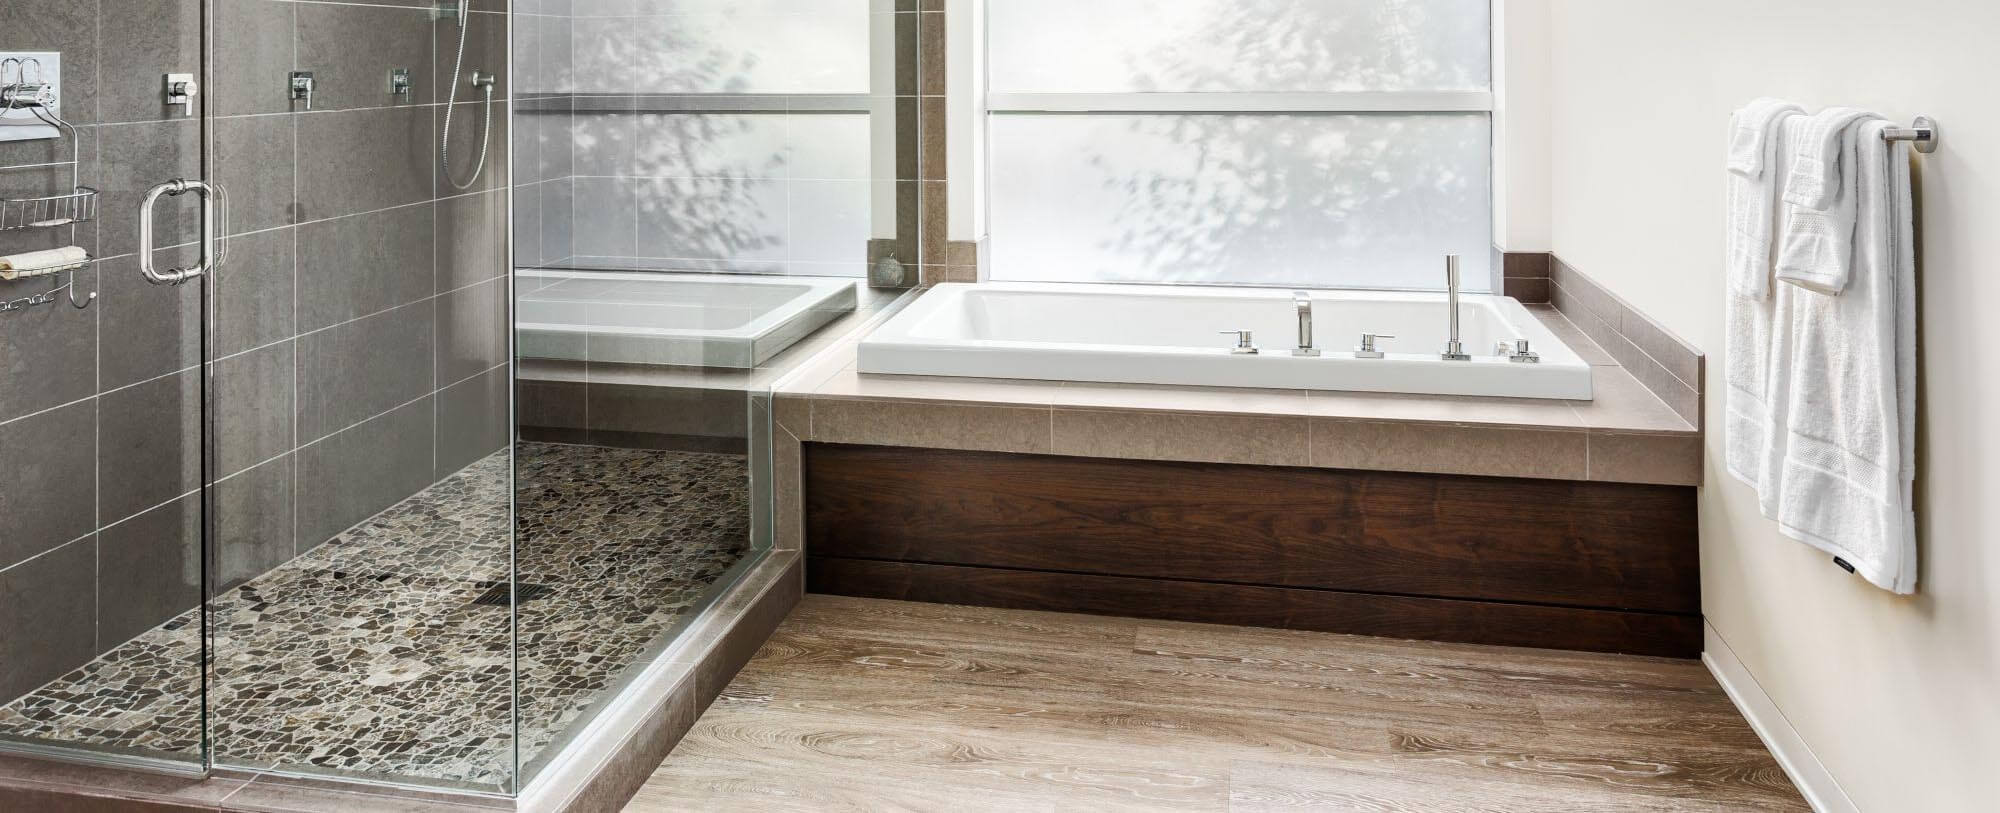 Modern Bathroom with Soaker Tub and Glass Shower